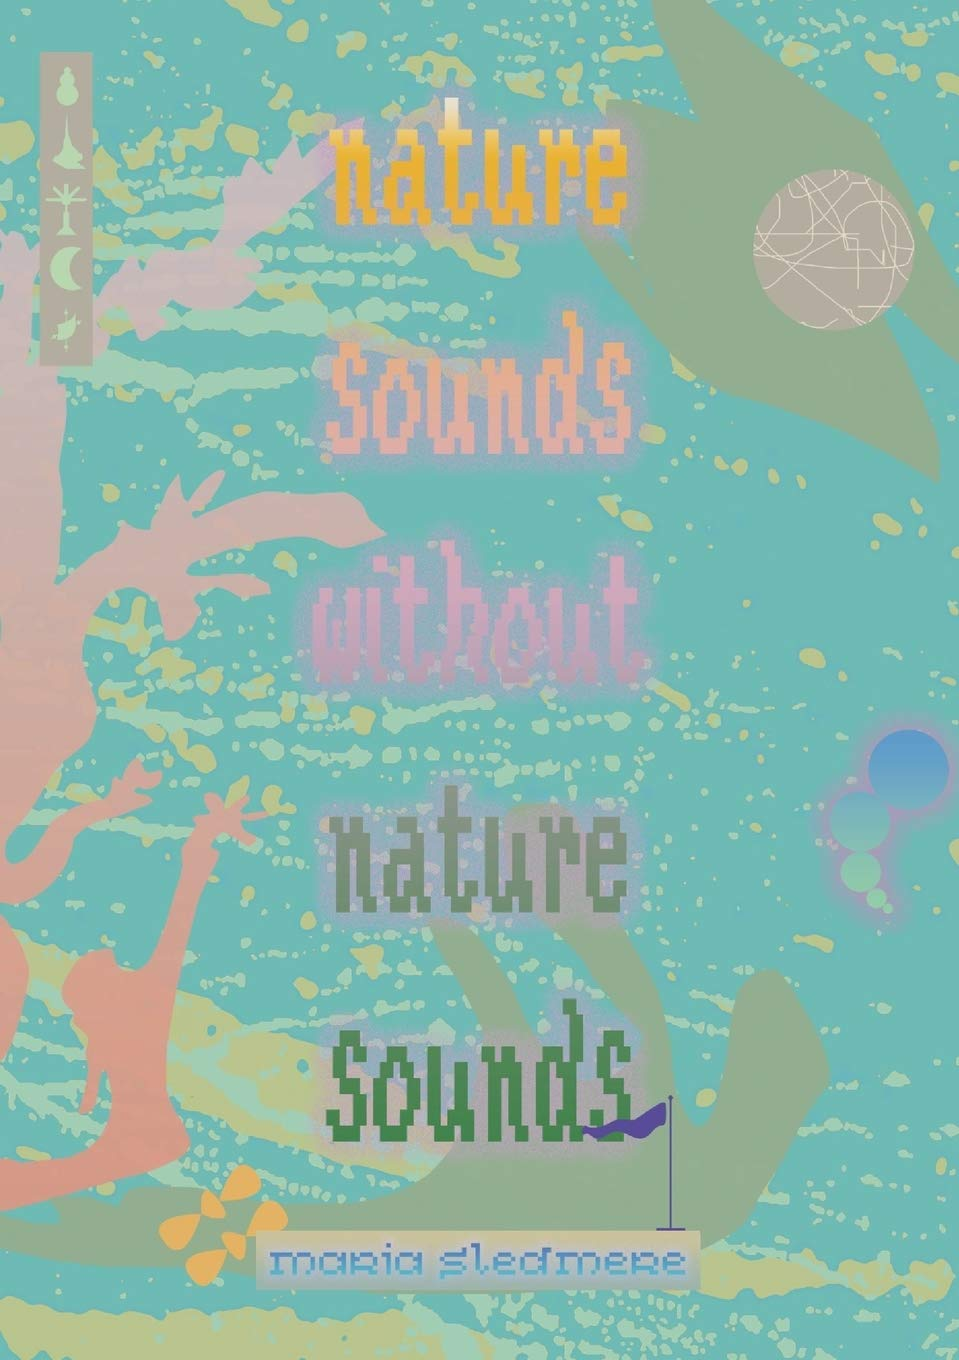 Maria Sledmere – nature sounds without nature sounds